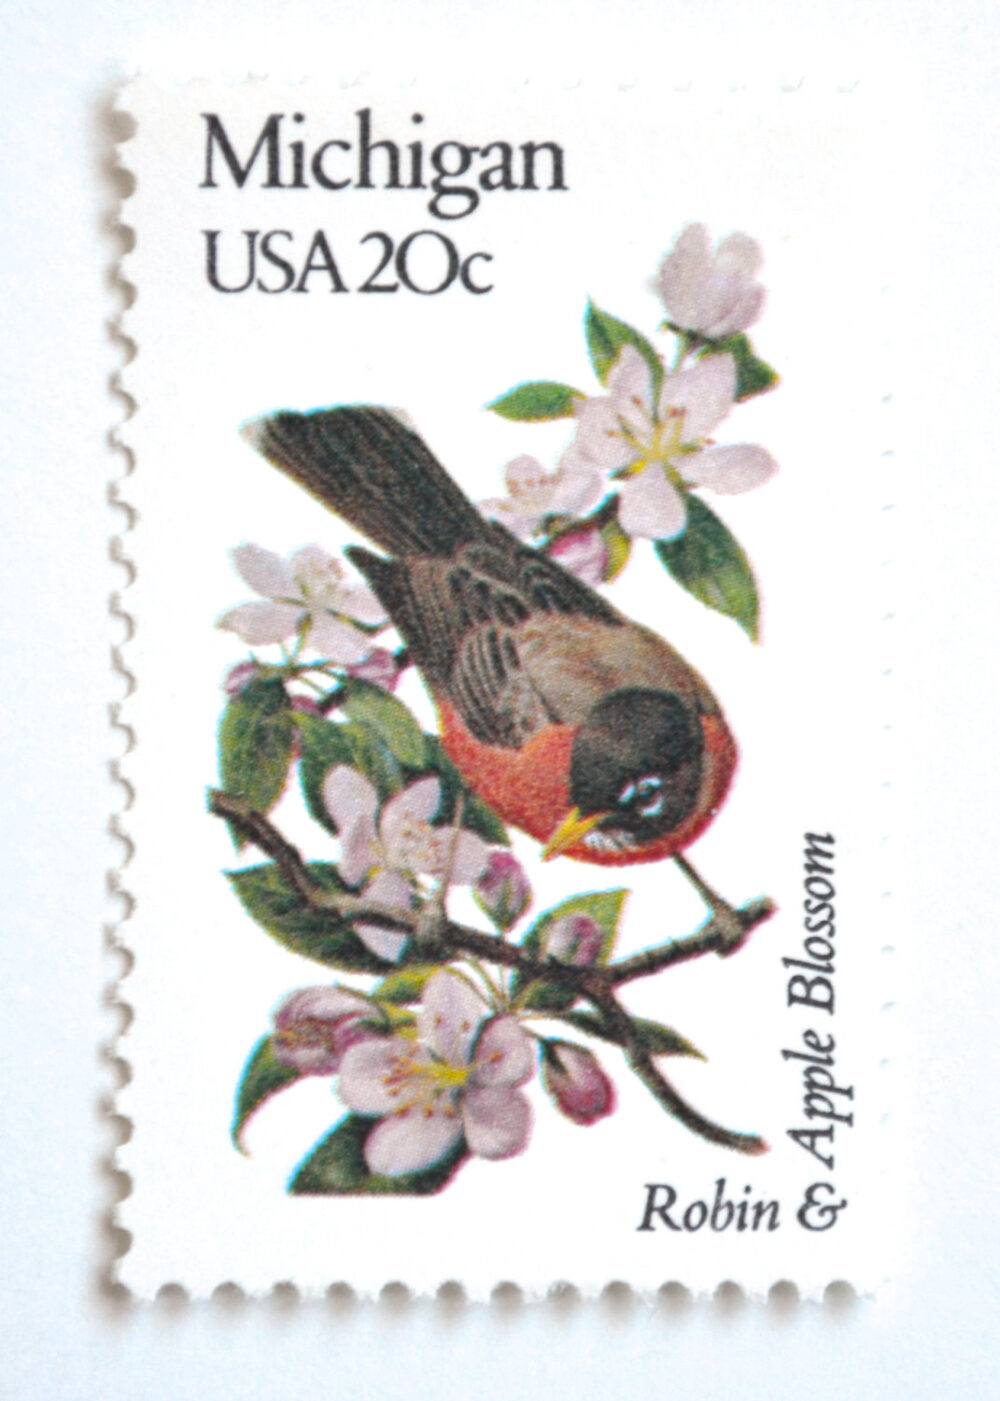 10 Michigan Vintage Postage Stamps Unused Robin & Apple Blossom State Bird & Flower For Mailing